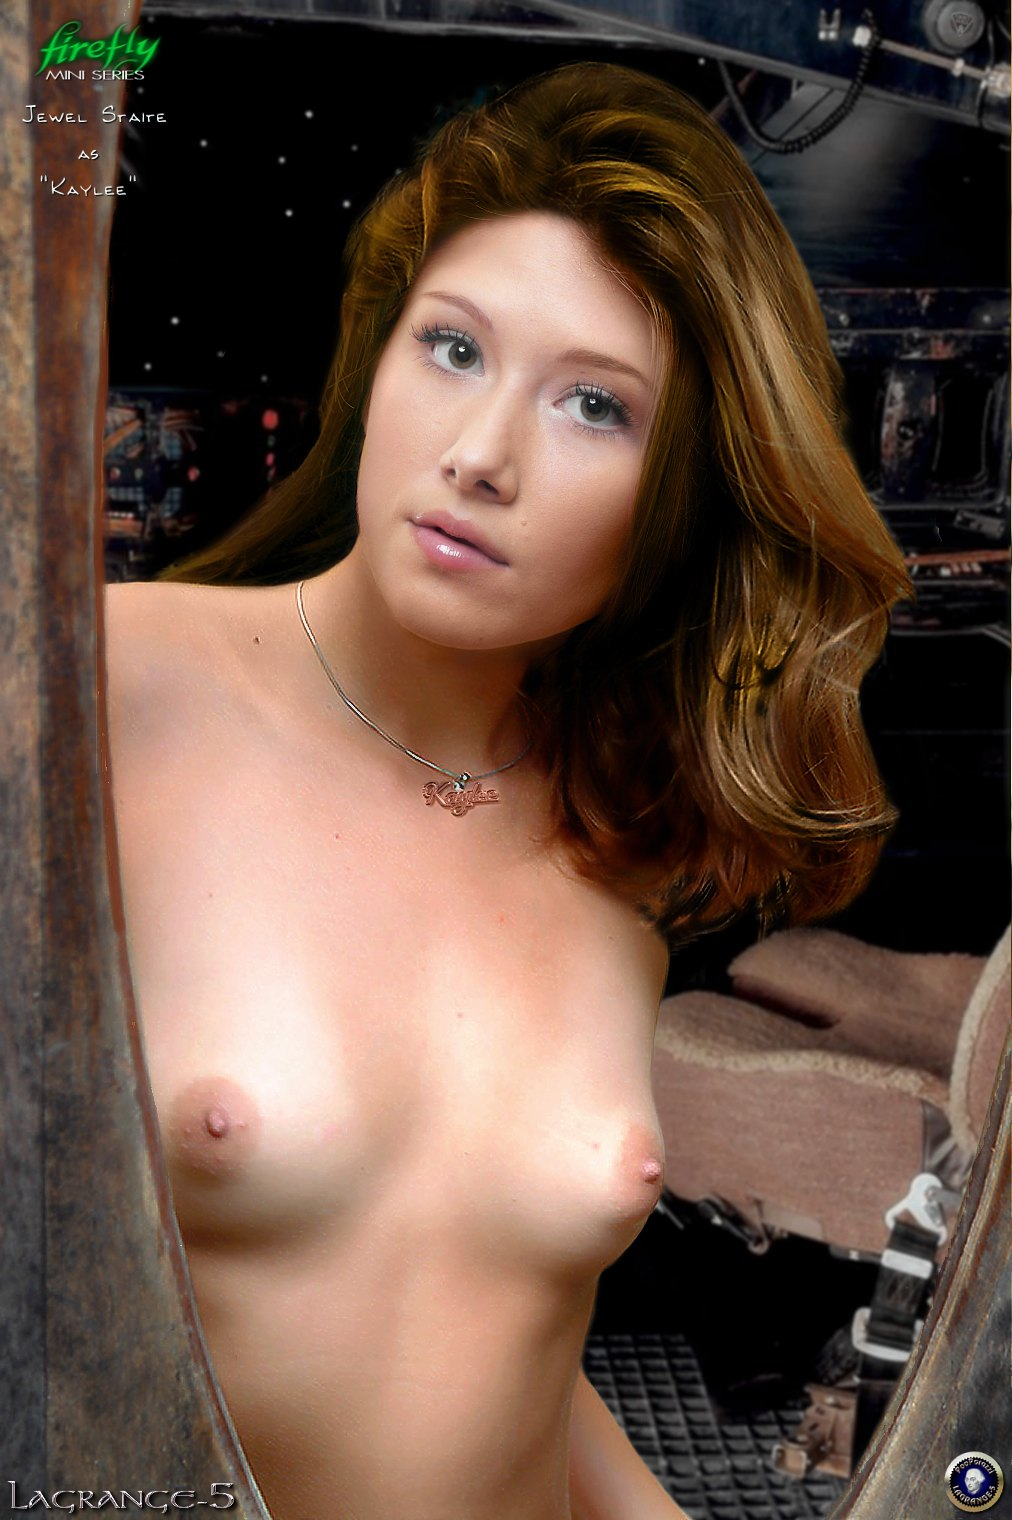 Jewel Staite Nude Pics Open Sex Pages